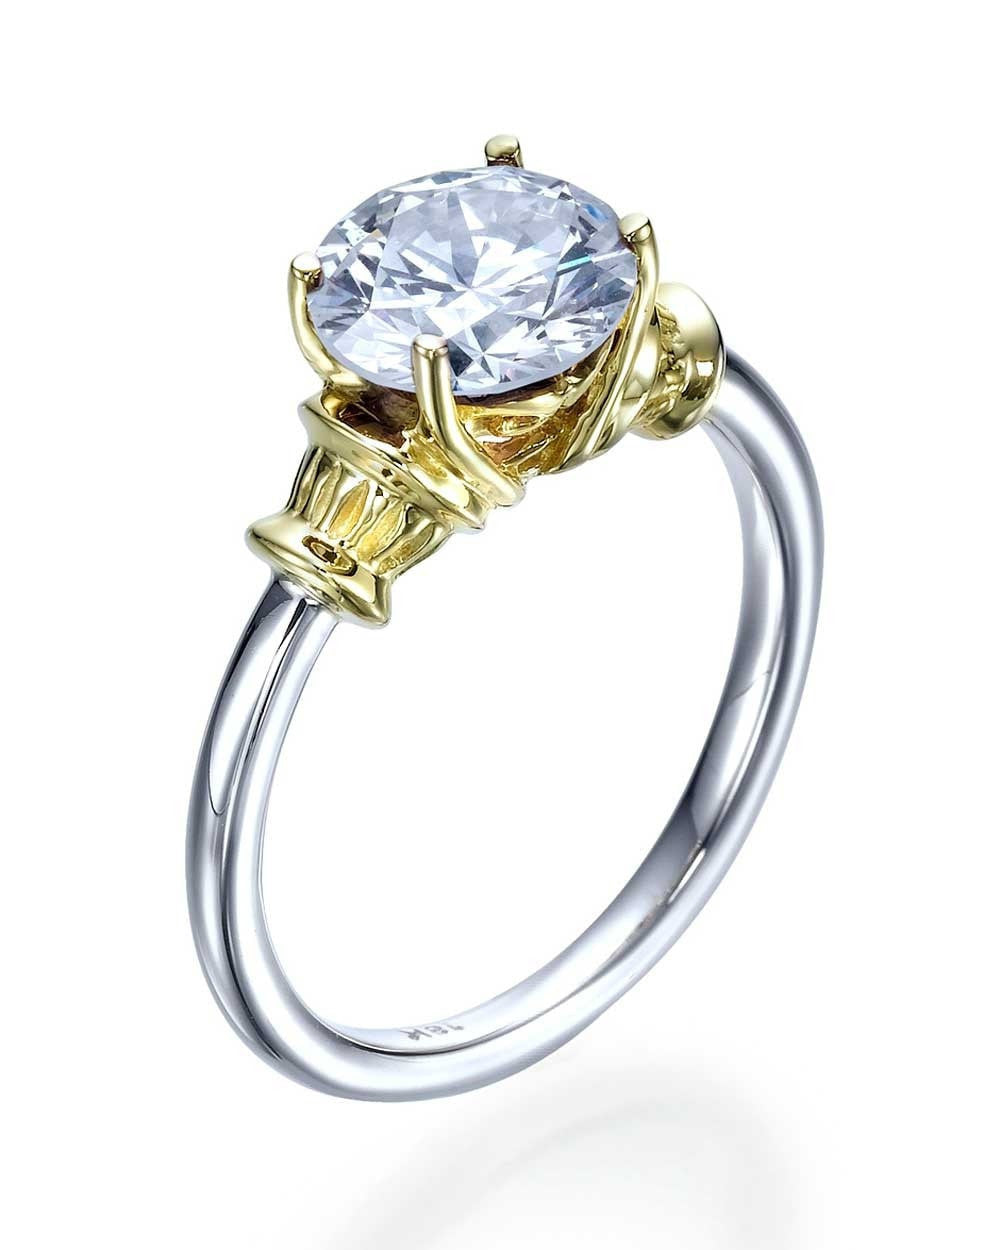 Engagement Rings Two-Tone Gold Unique Vintage Antique Diamond Semi Mount Settings